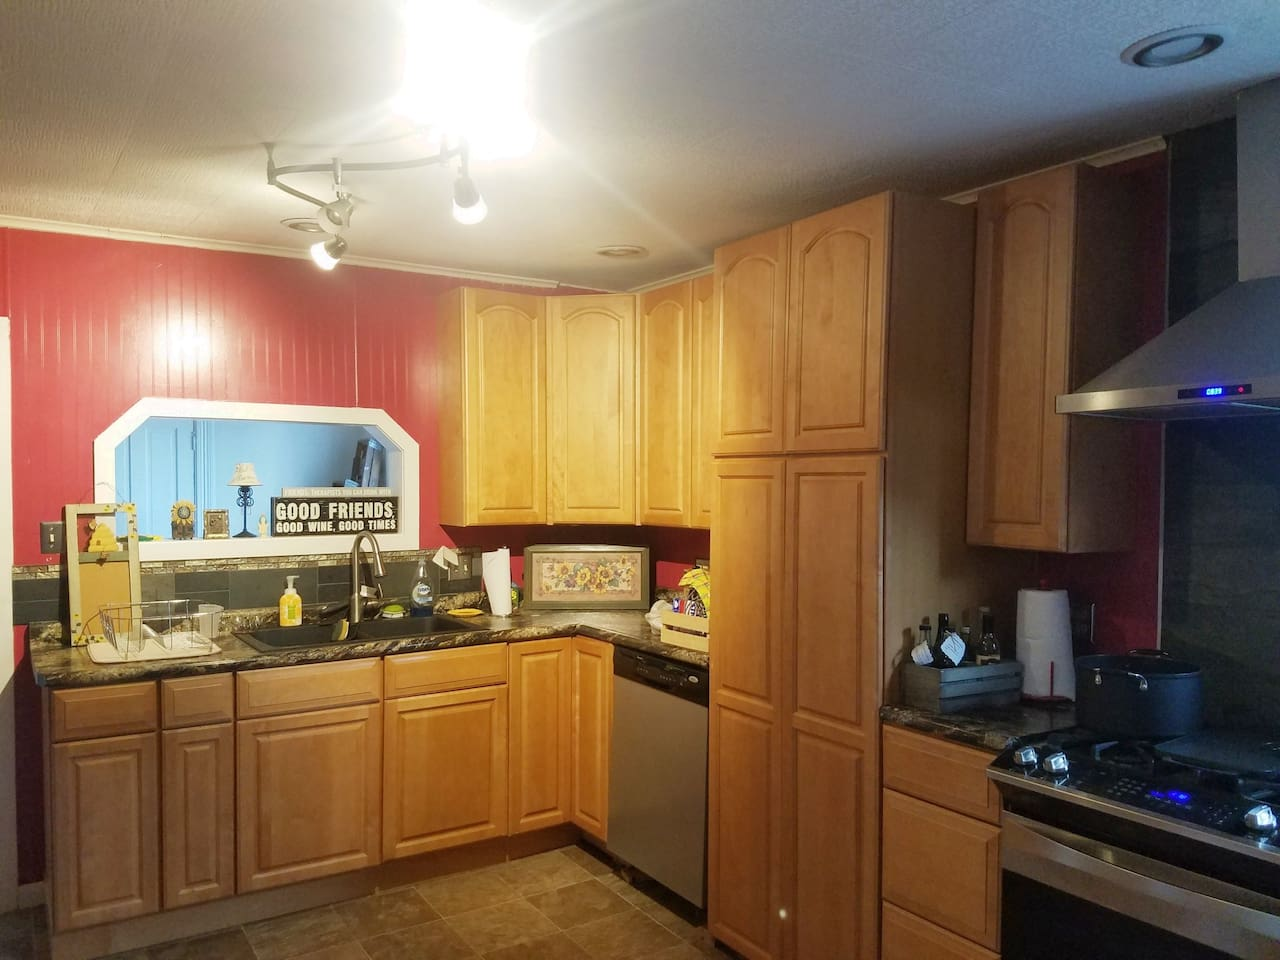 Completely remodeled kitchen with everything you need for a home away from home!